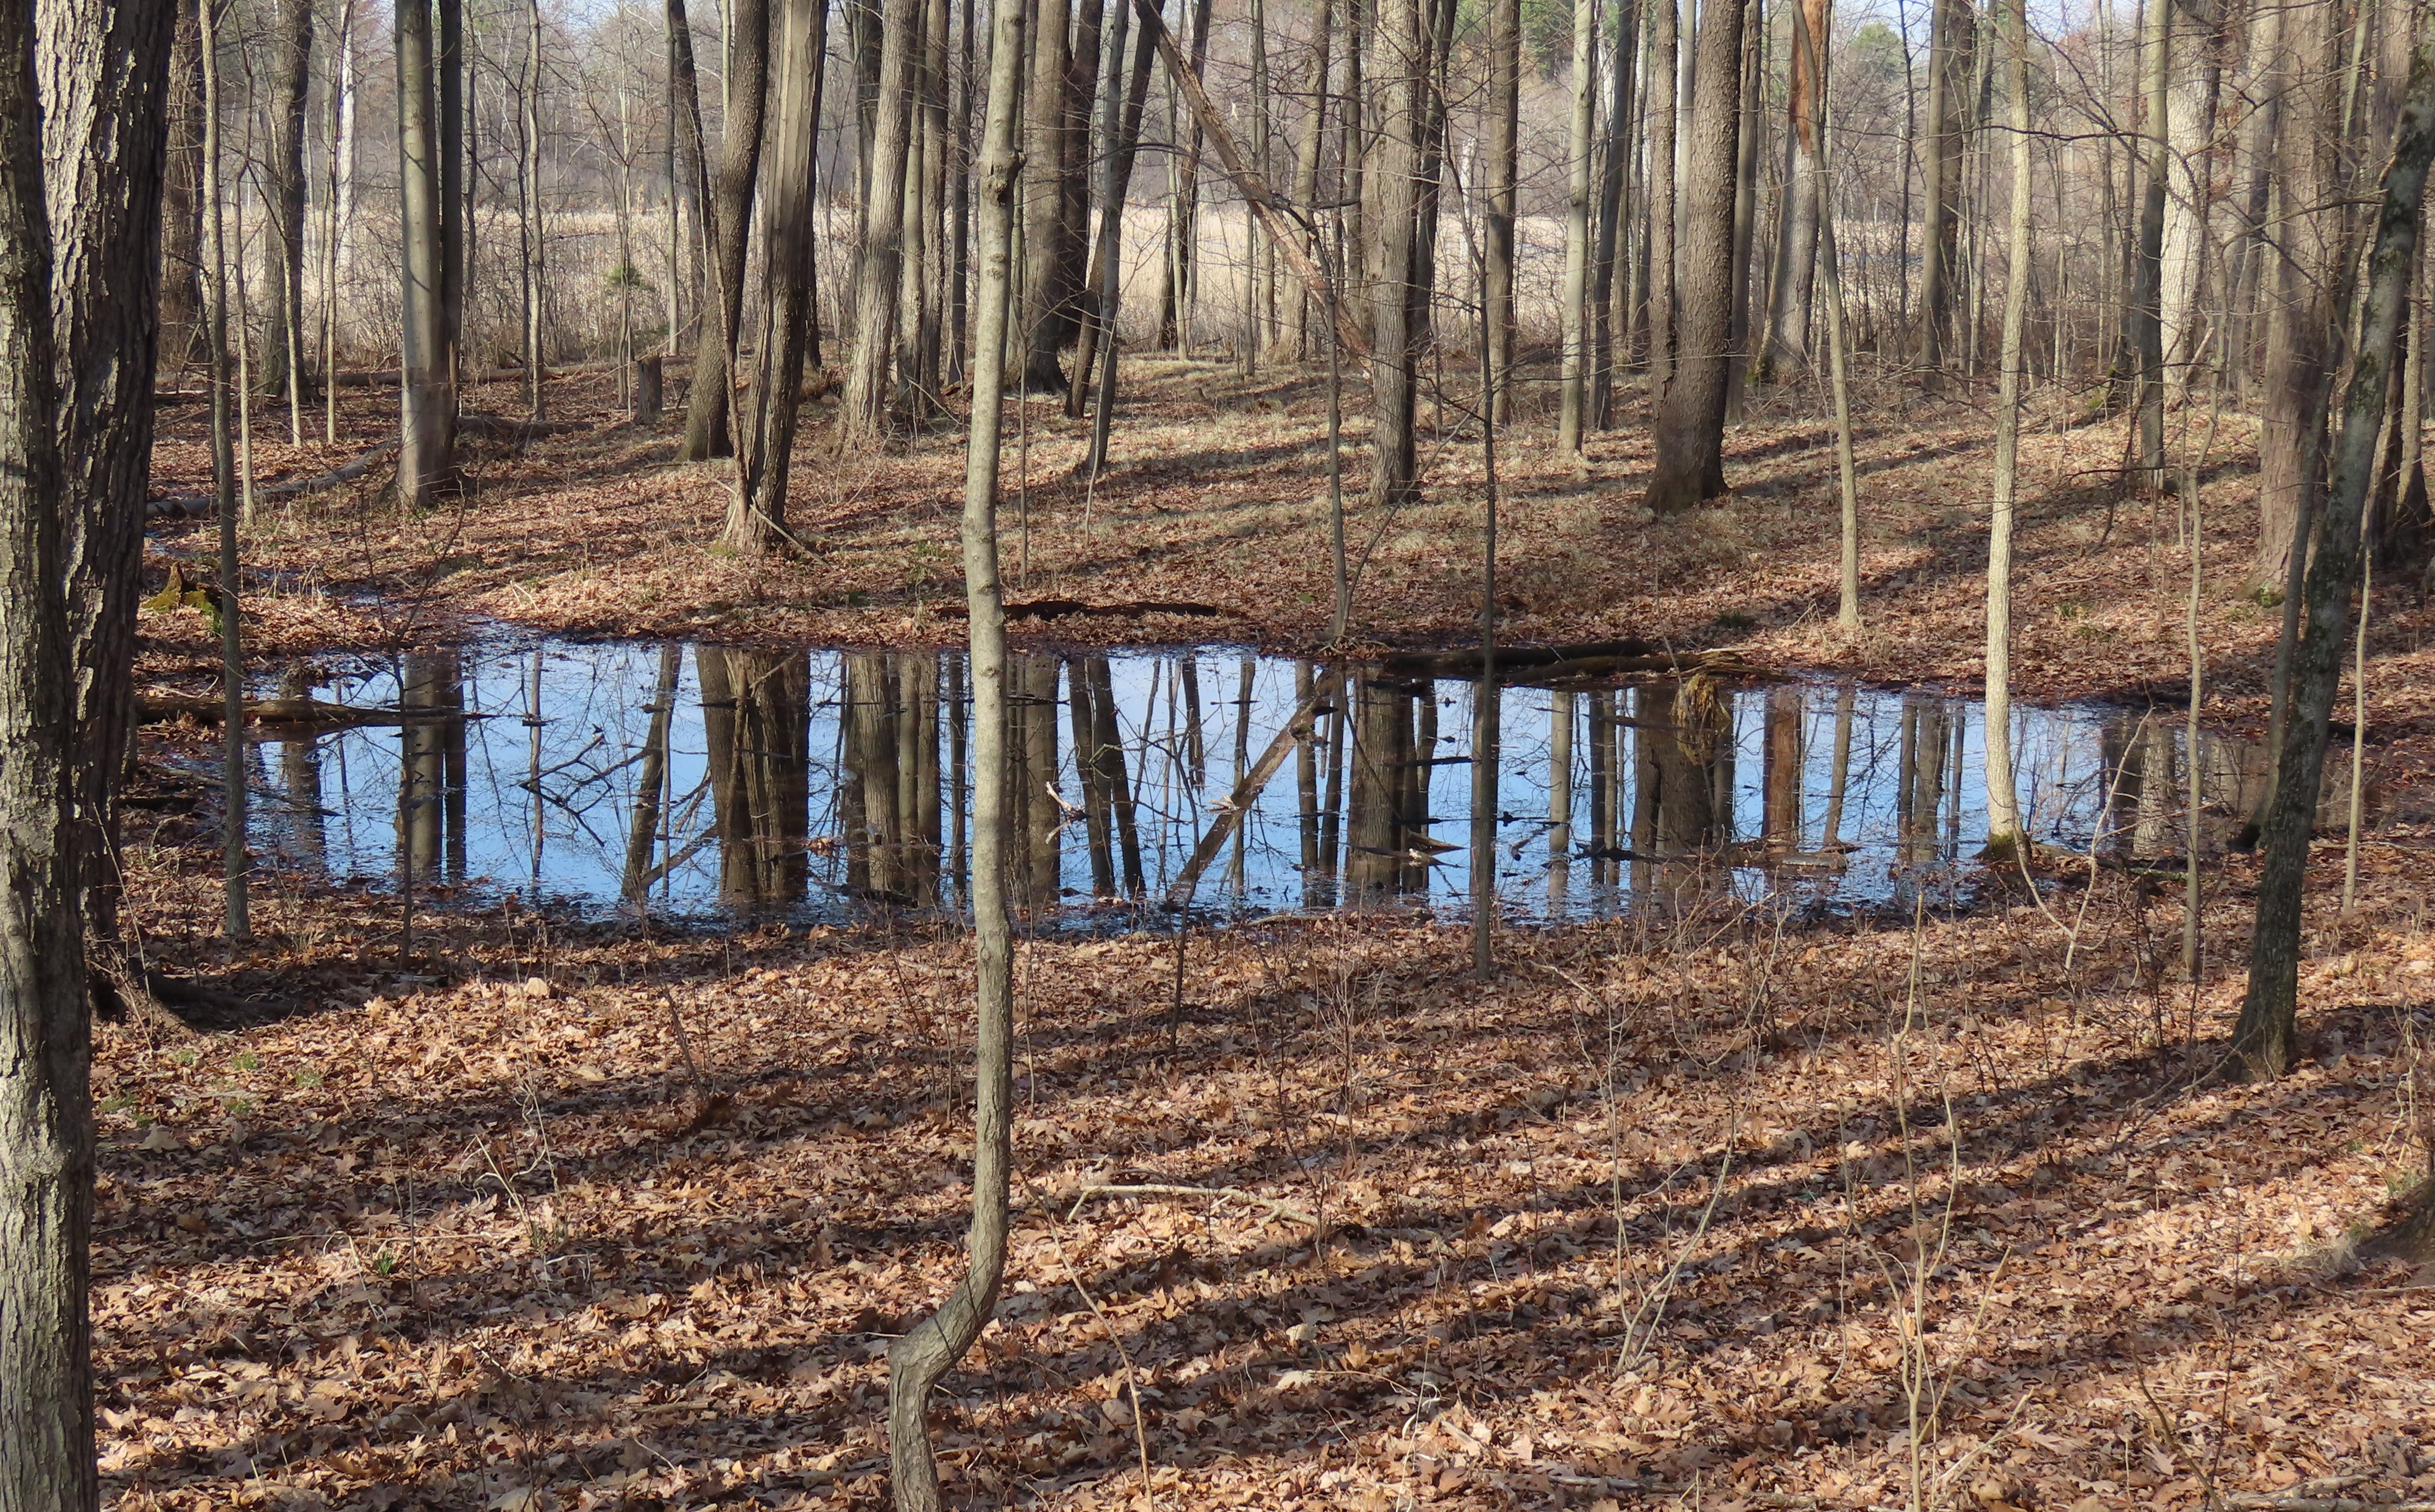 A vernal pond in a wooded area